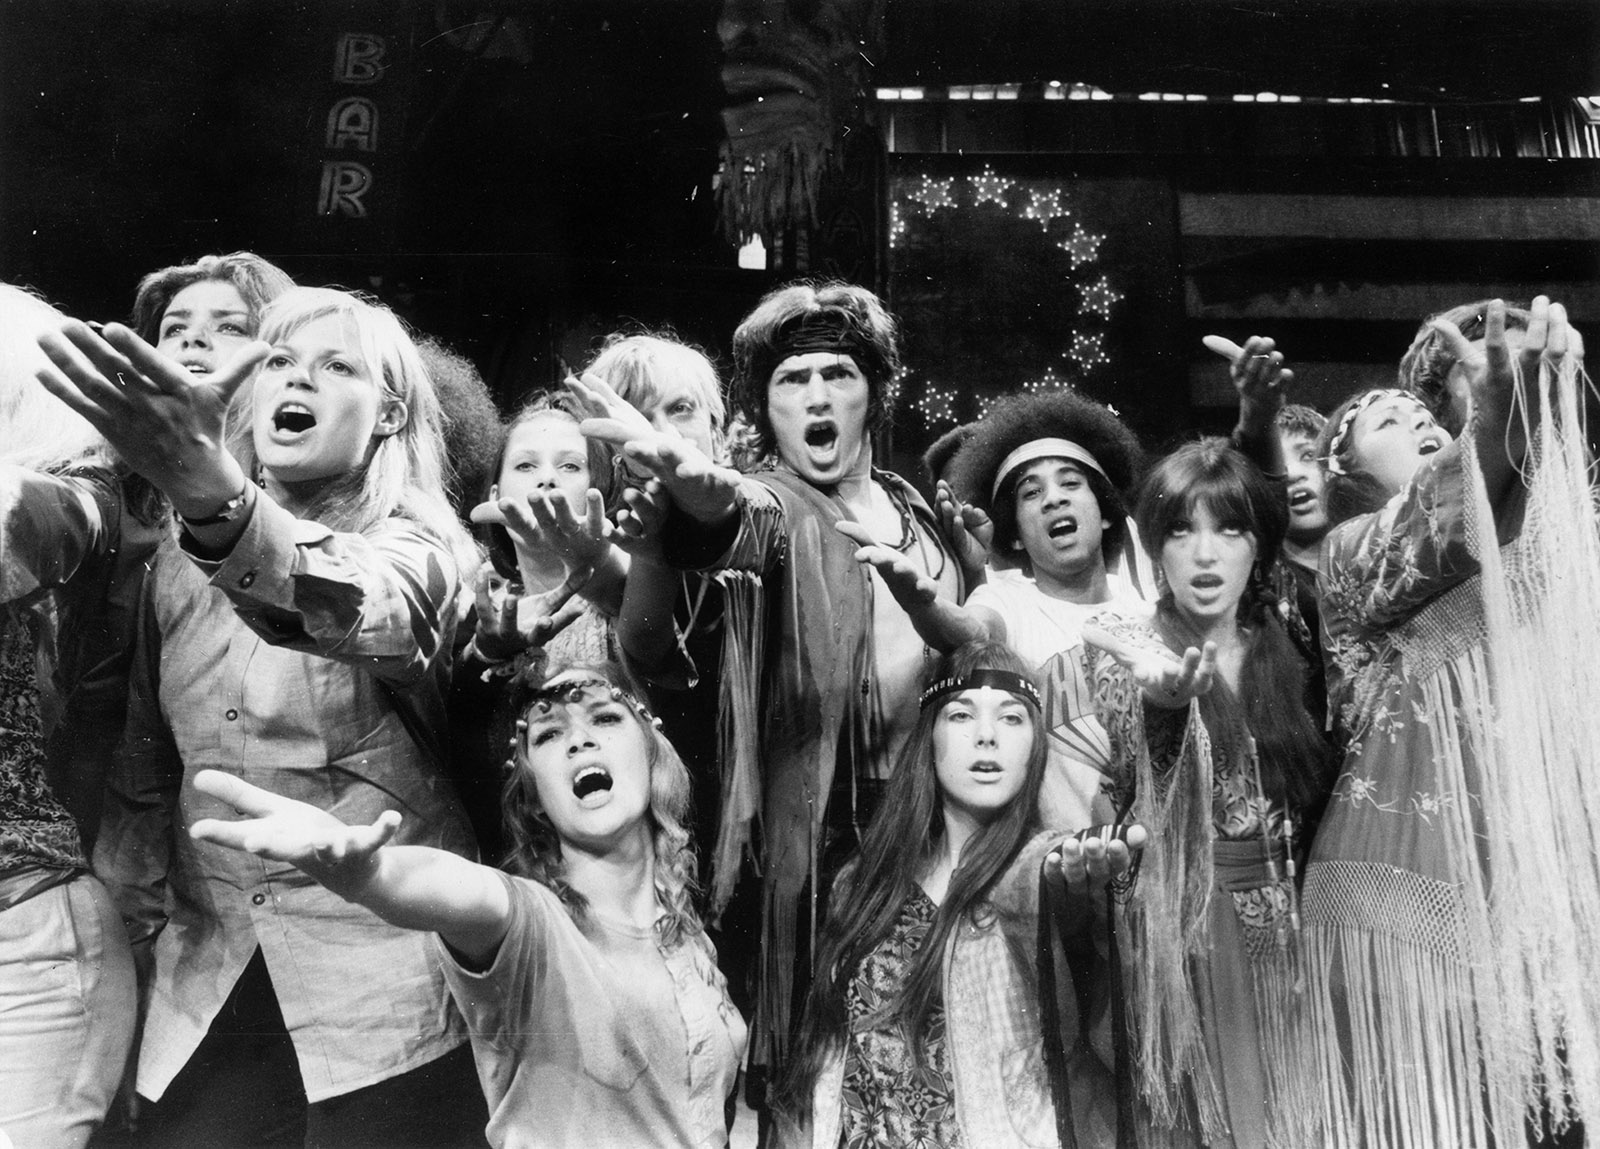 A rehearsal of the musical <i>Hair</i> at the Shaftesbury Theatre, London, September 1968